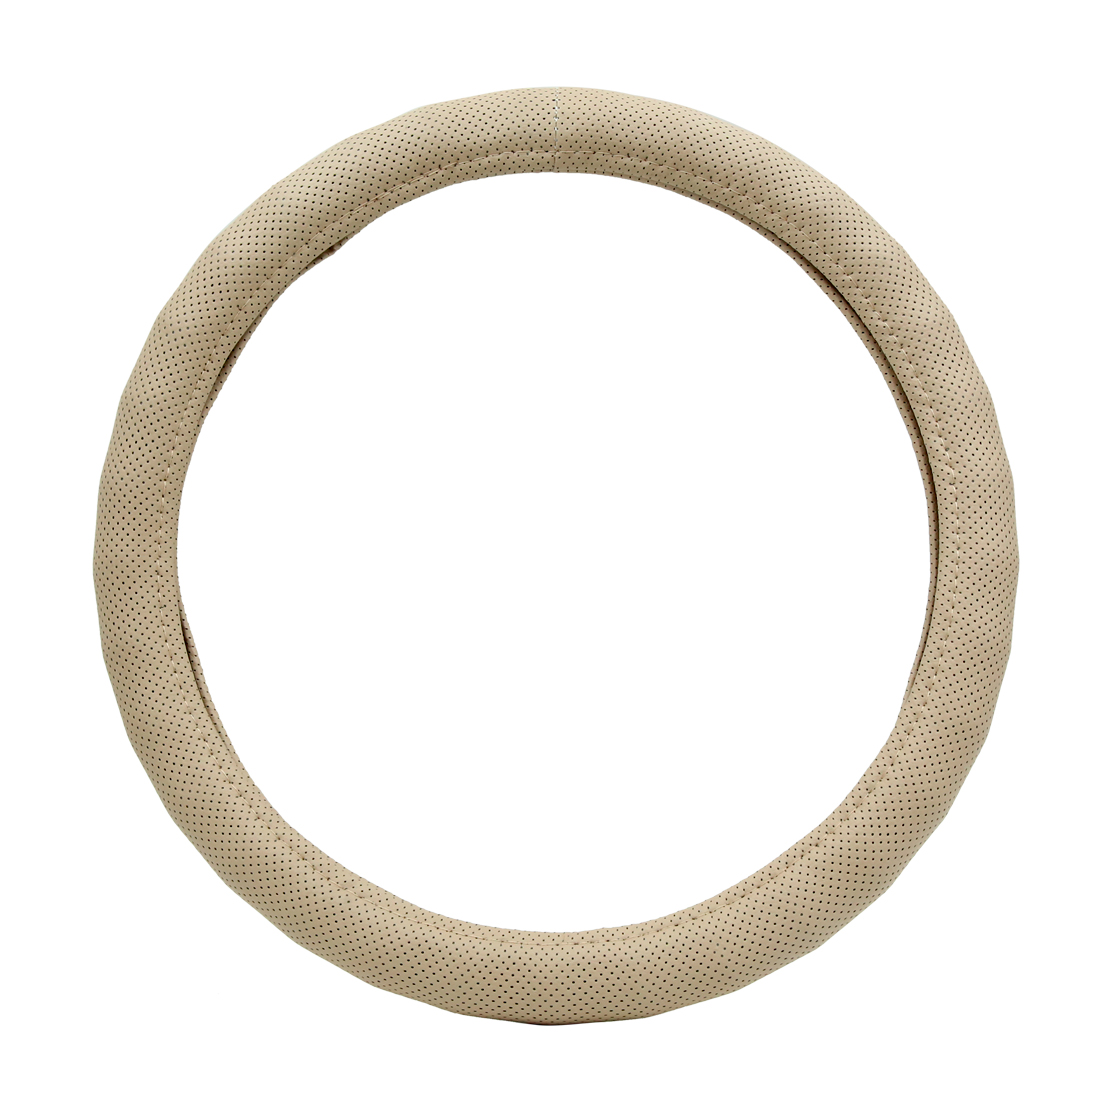 30.5cm-36cm Dia Faux Leather Nonslip Car Steering Wheel Cover Protector Beige